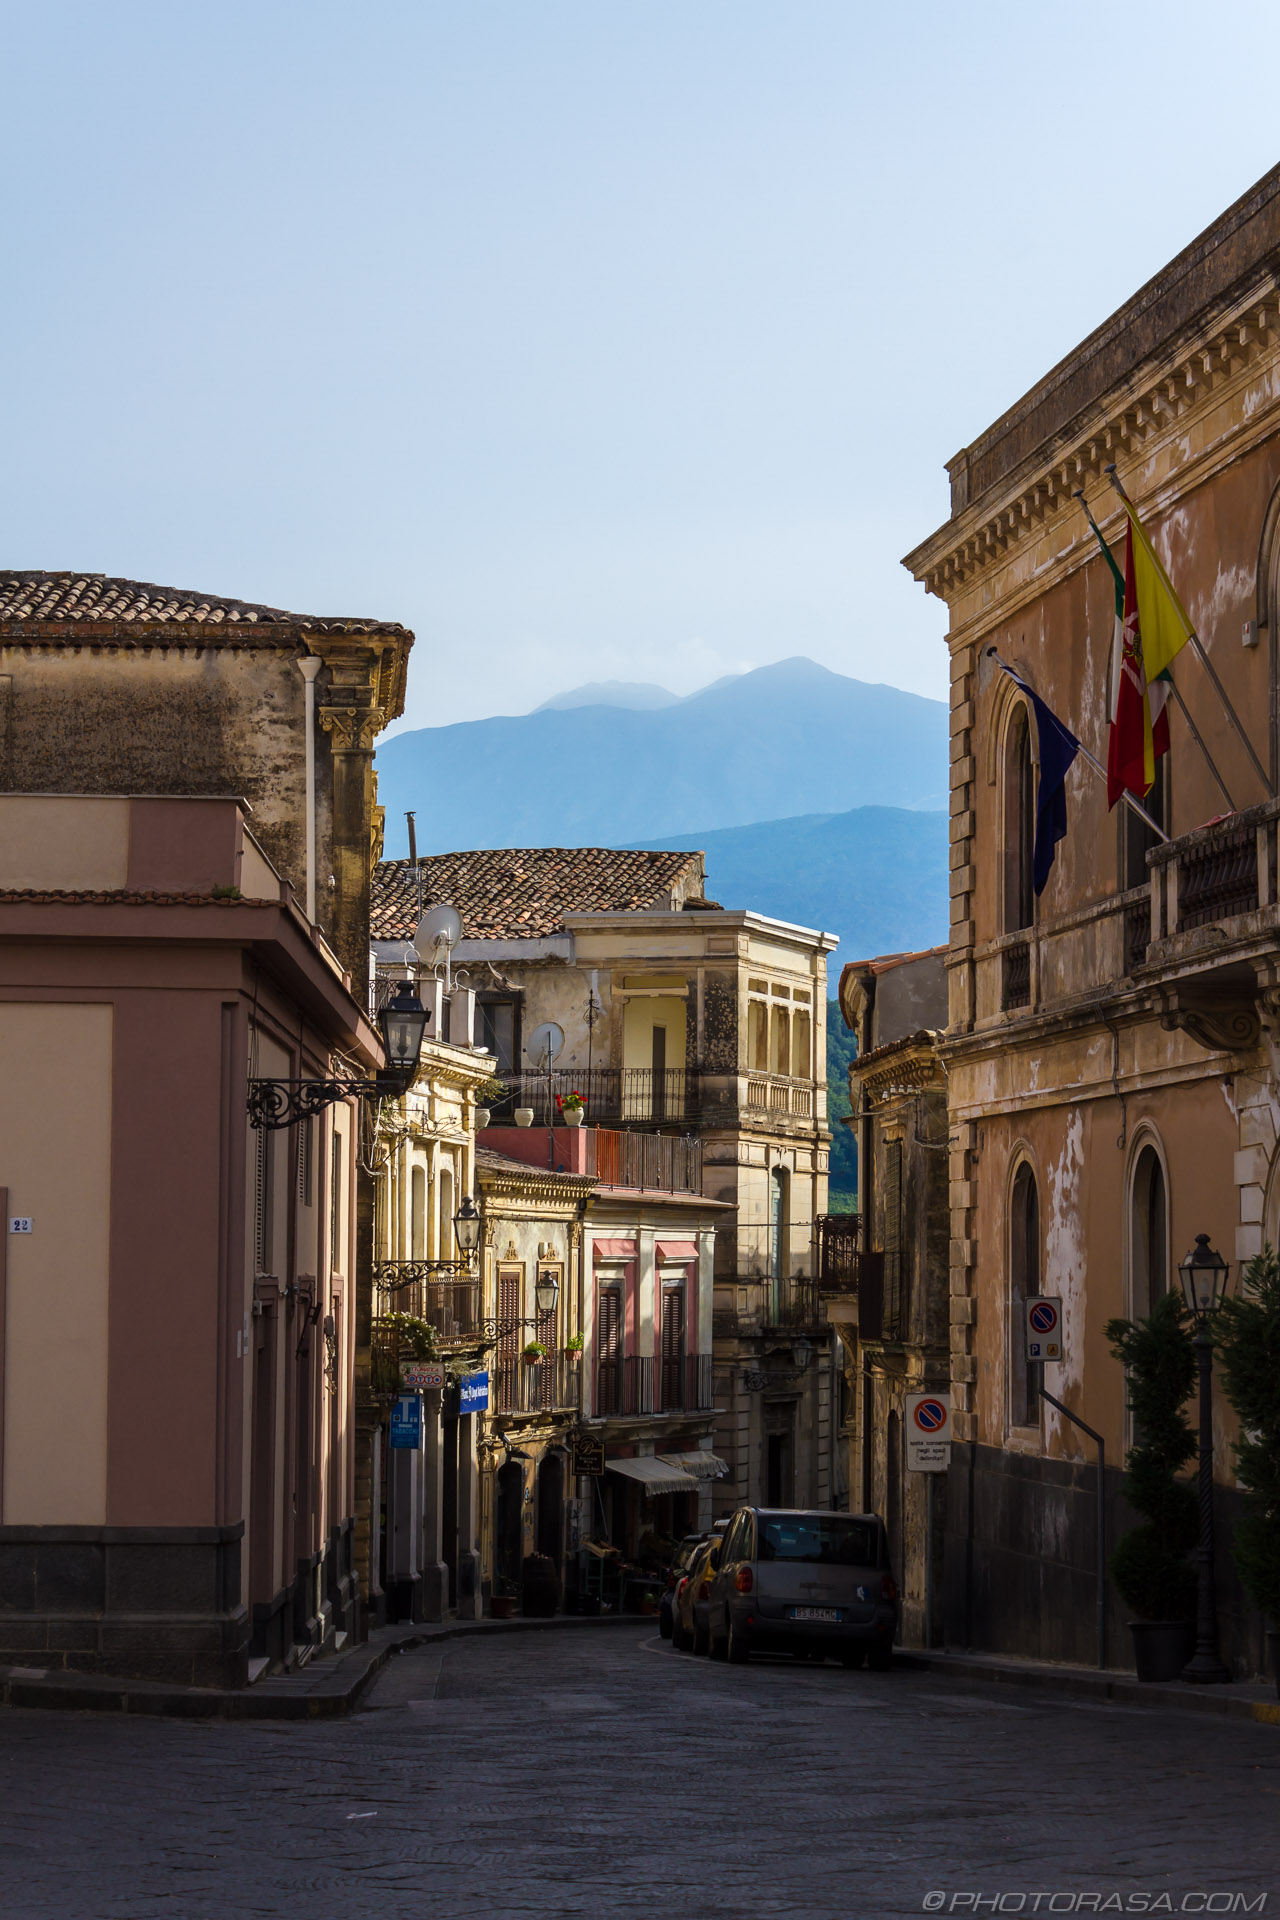 https://photorasa.com/mount-etna/view-of-etna-from-village-centre/